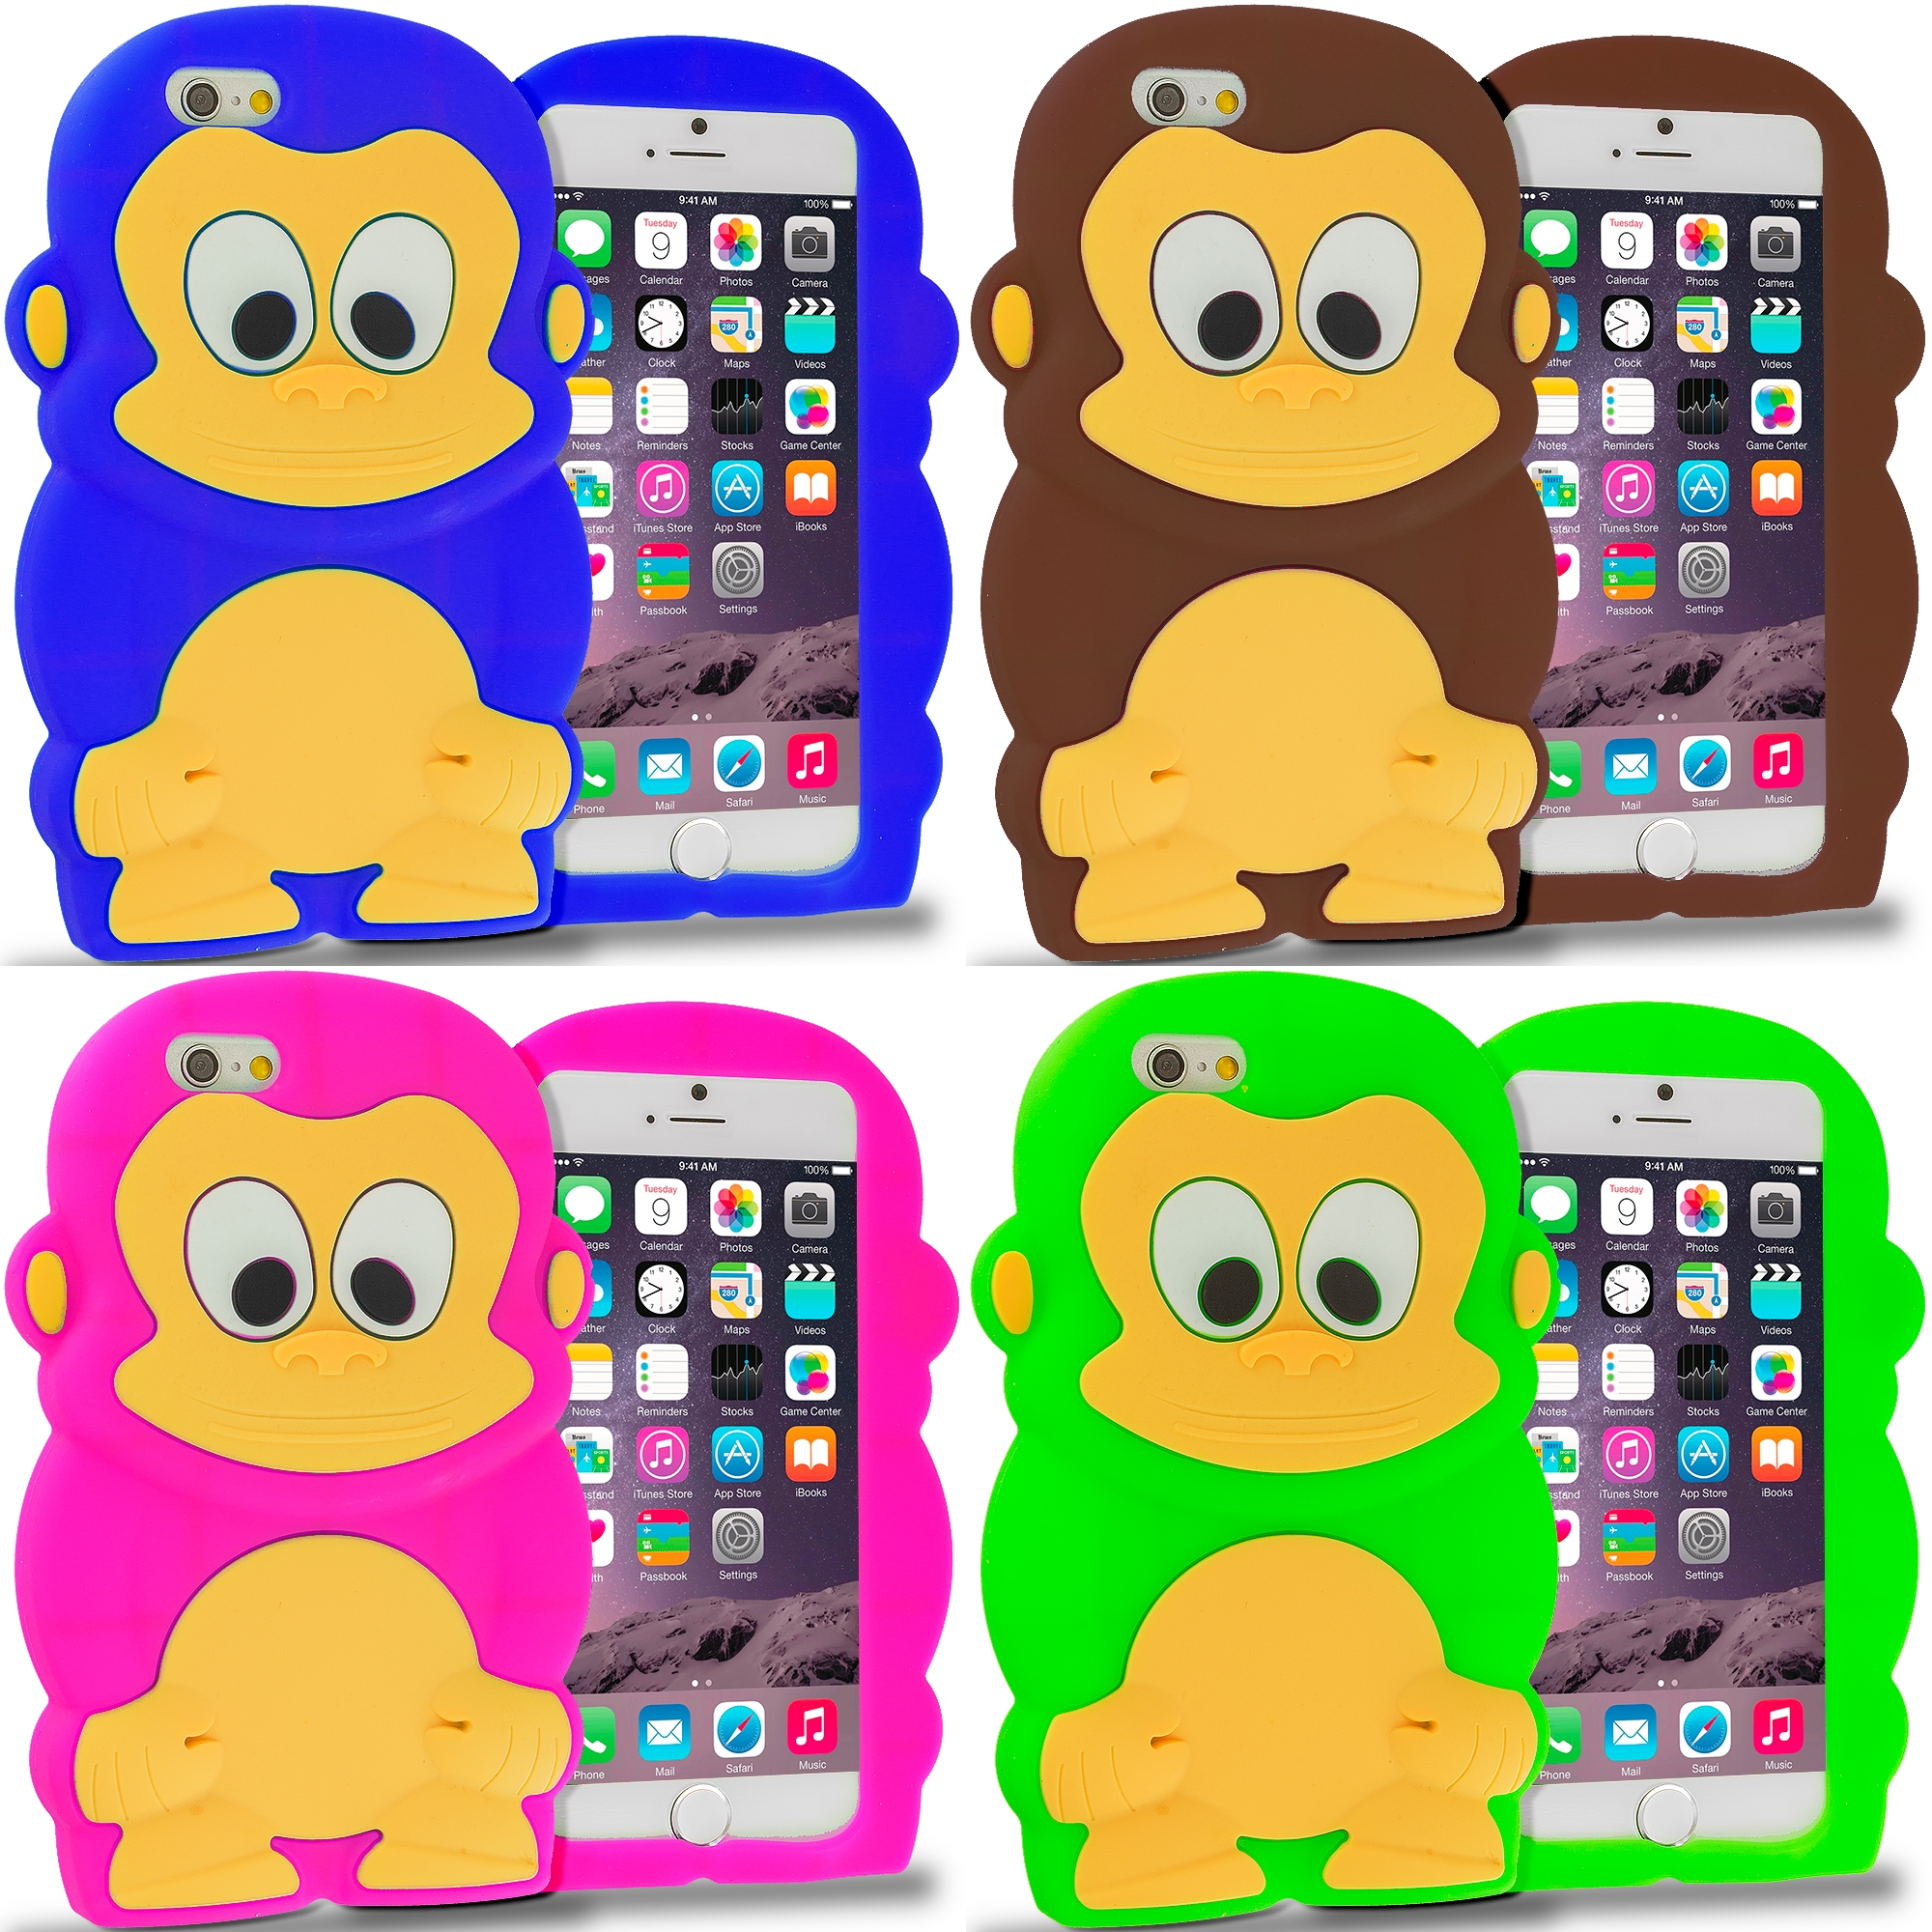 Apple iPhone 6 6S (4.7) 4 in 1 Combo Bundle Pack - Monkey Silicone Design Soft Skin Case Cover